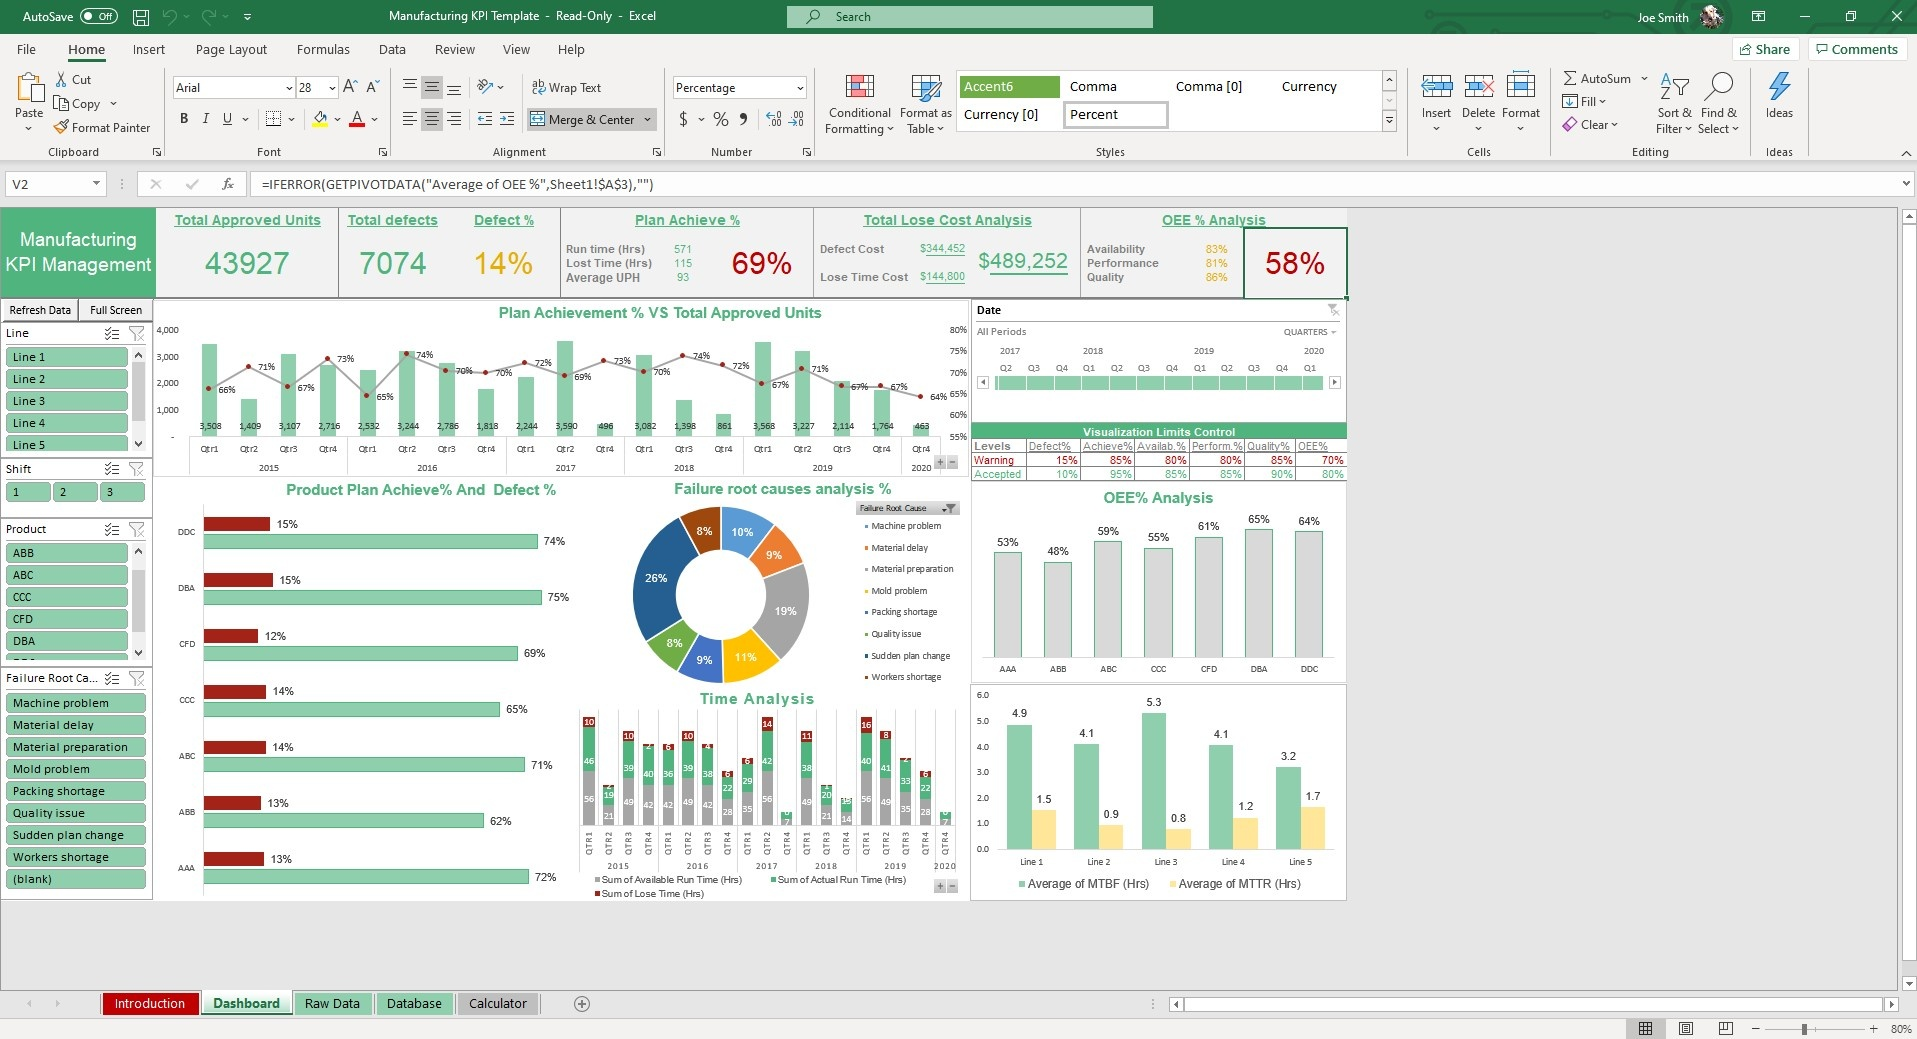 Our KPI dashboard has dynamic charts, formulas and slicers to help you evaluate your manufacturing capabilities and capacity.